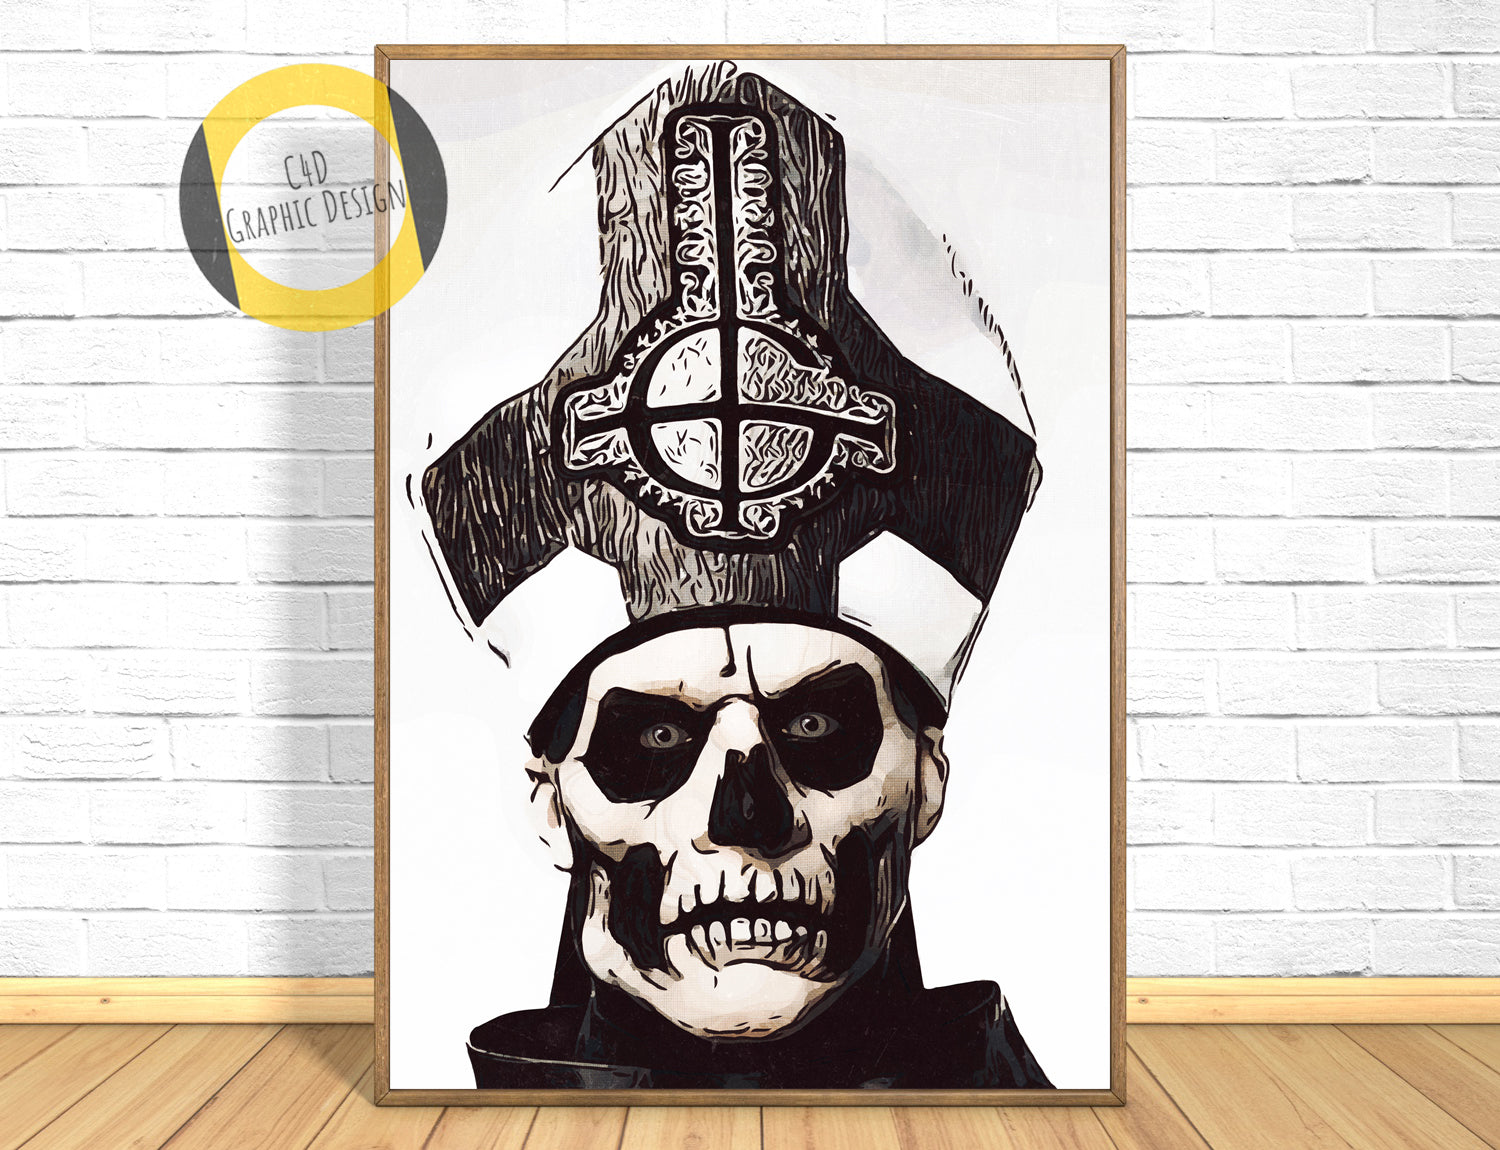 Ghost BC Papa Emeritus Poster,Ghost BC Papa Emeritus Print,Ghost BC Papa Emeritus Giclee Print,Music Poster,Black and White Art,Painting